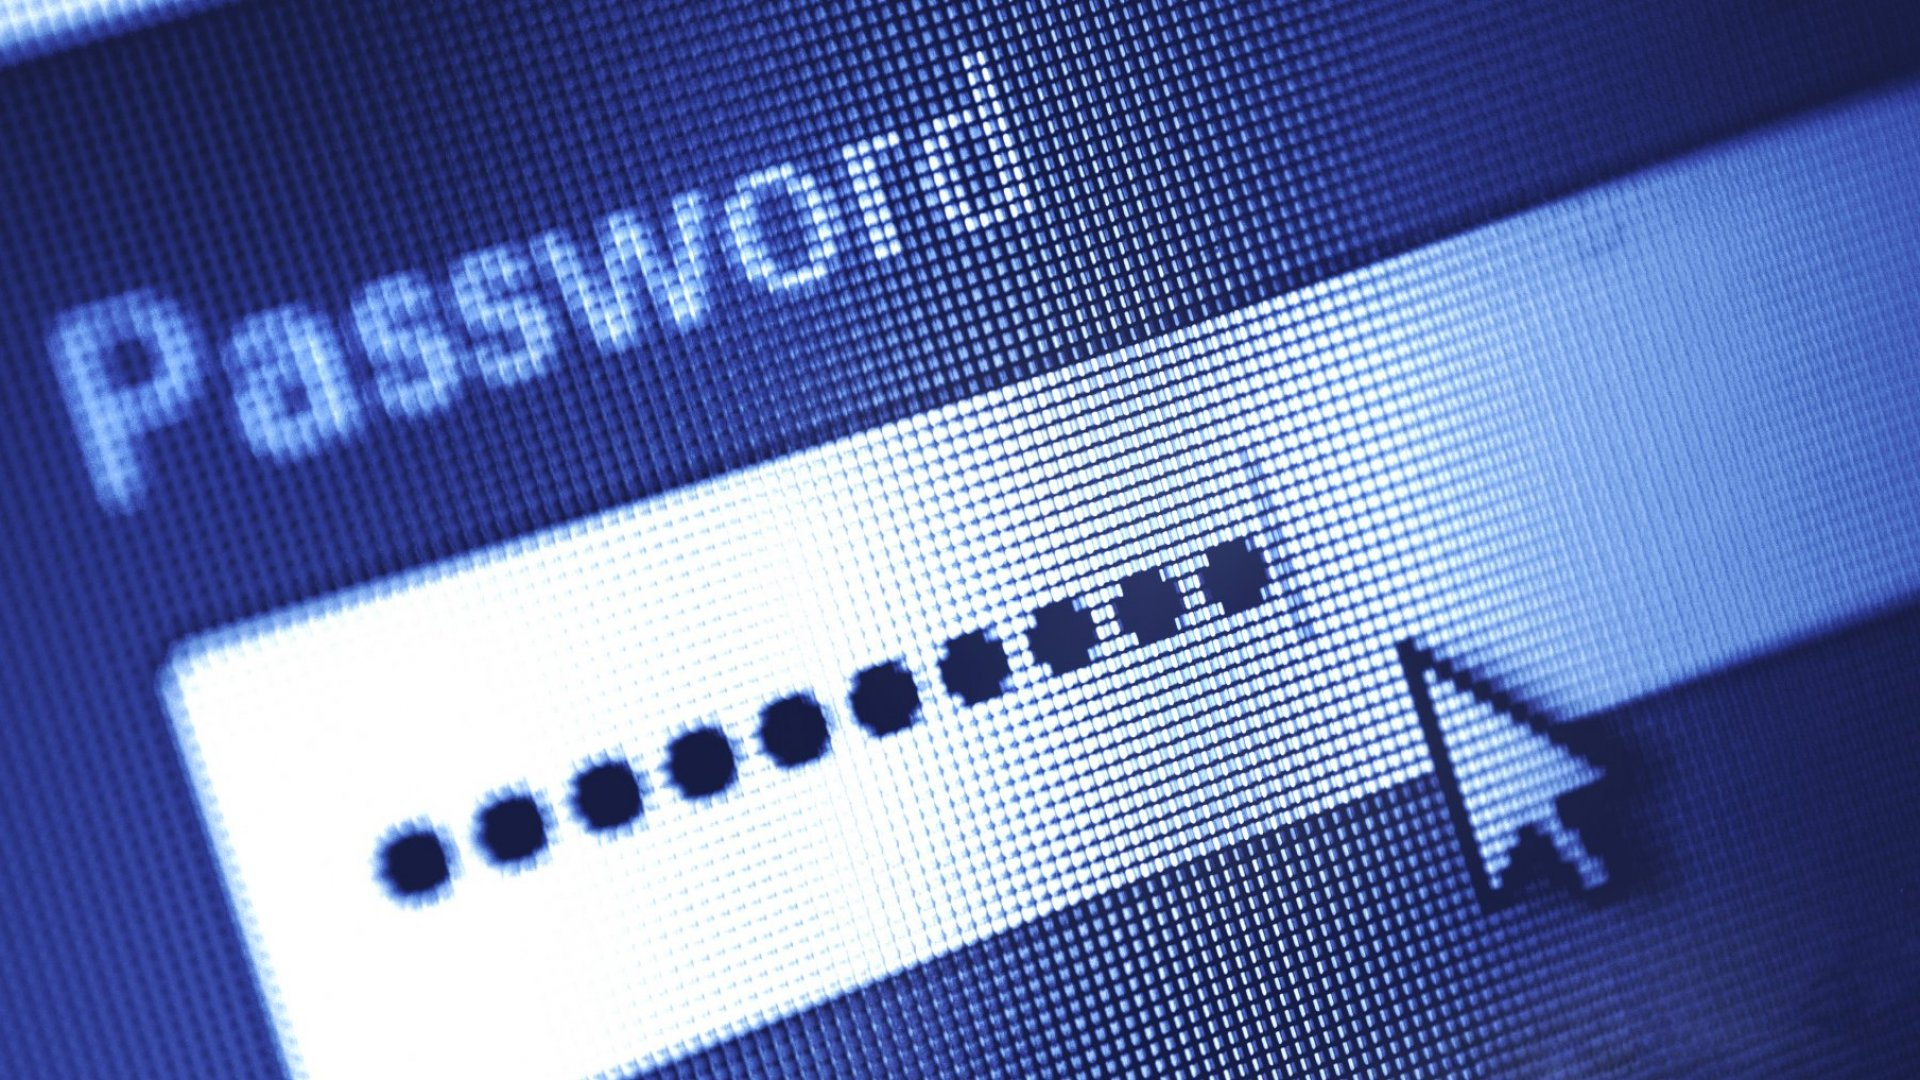 Everything We've Been Told About Passwords Is Wrong (According To The Person Who First Told Us)